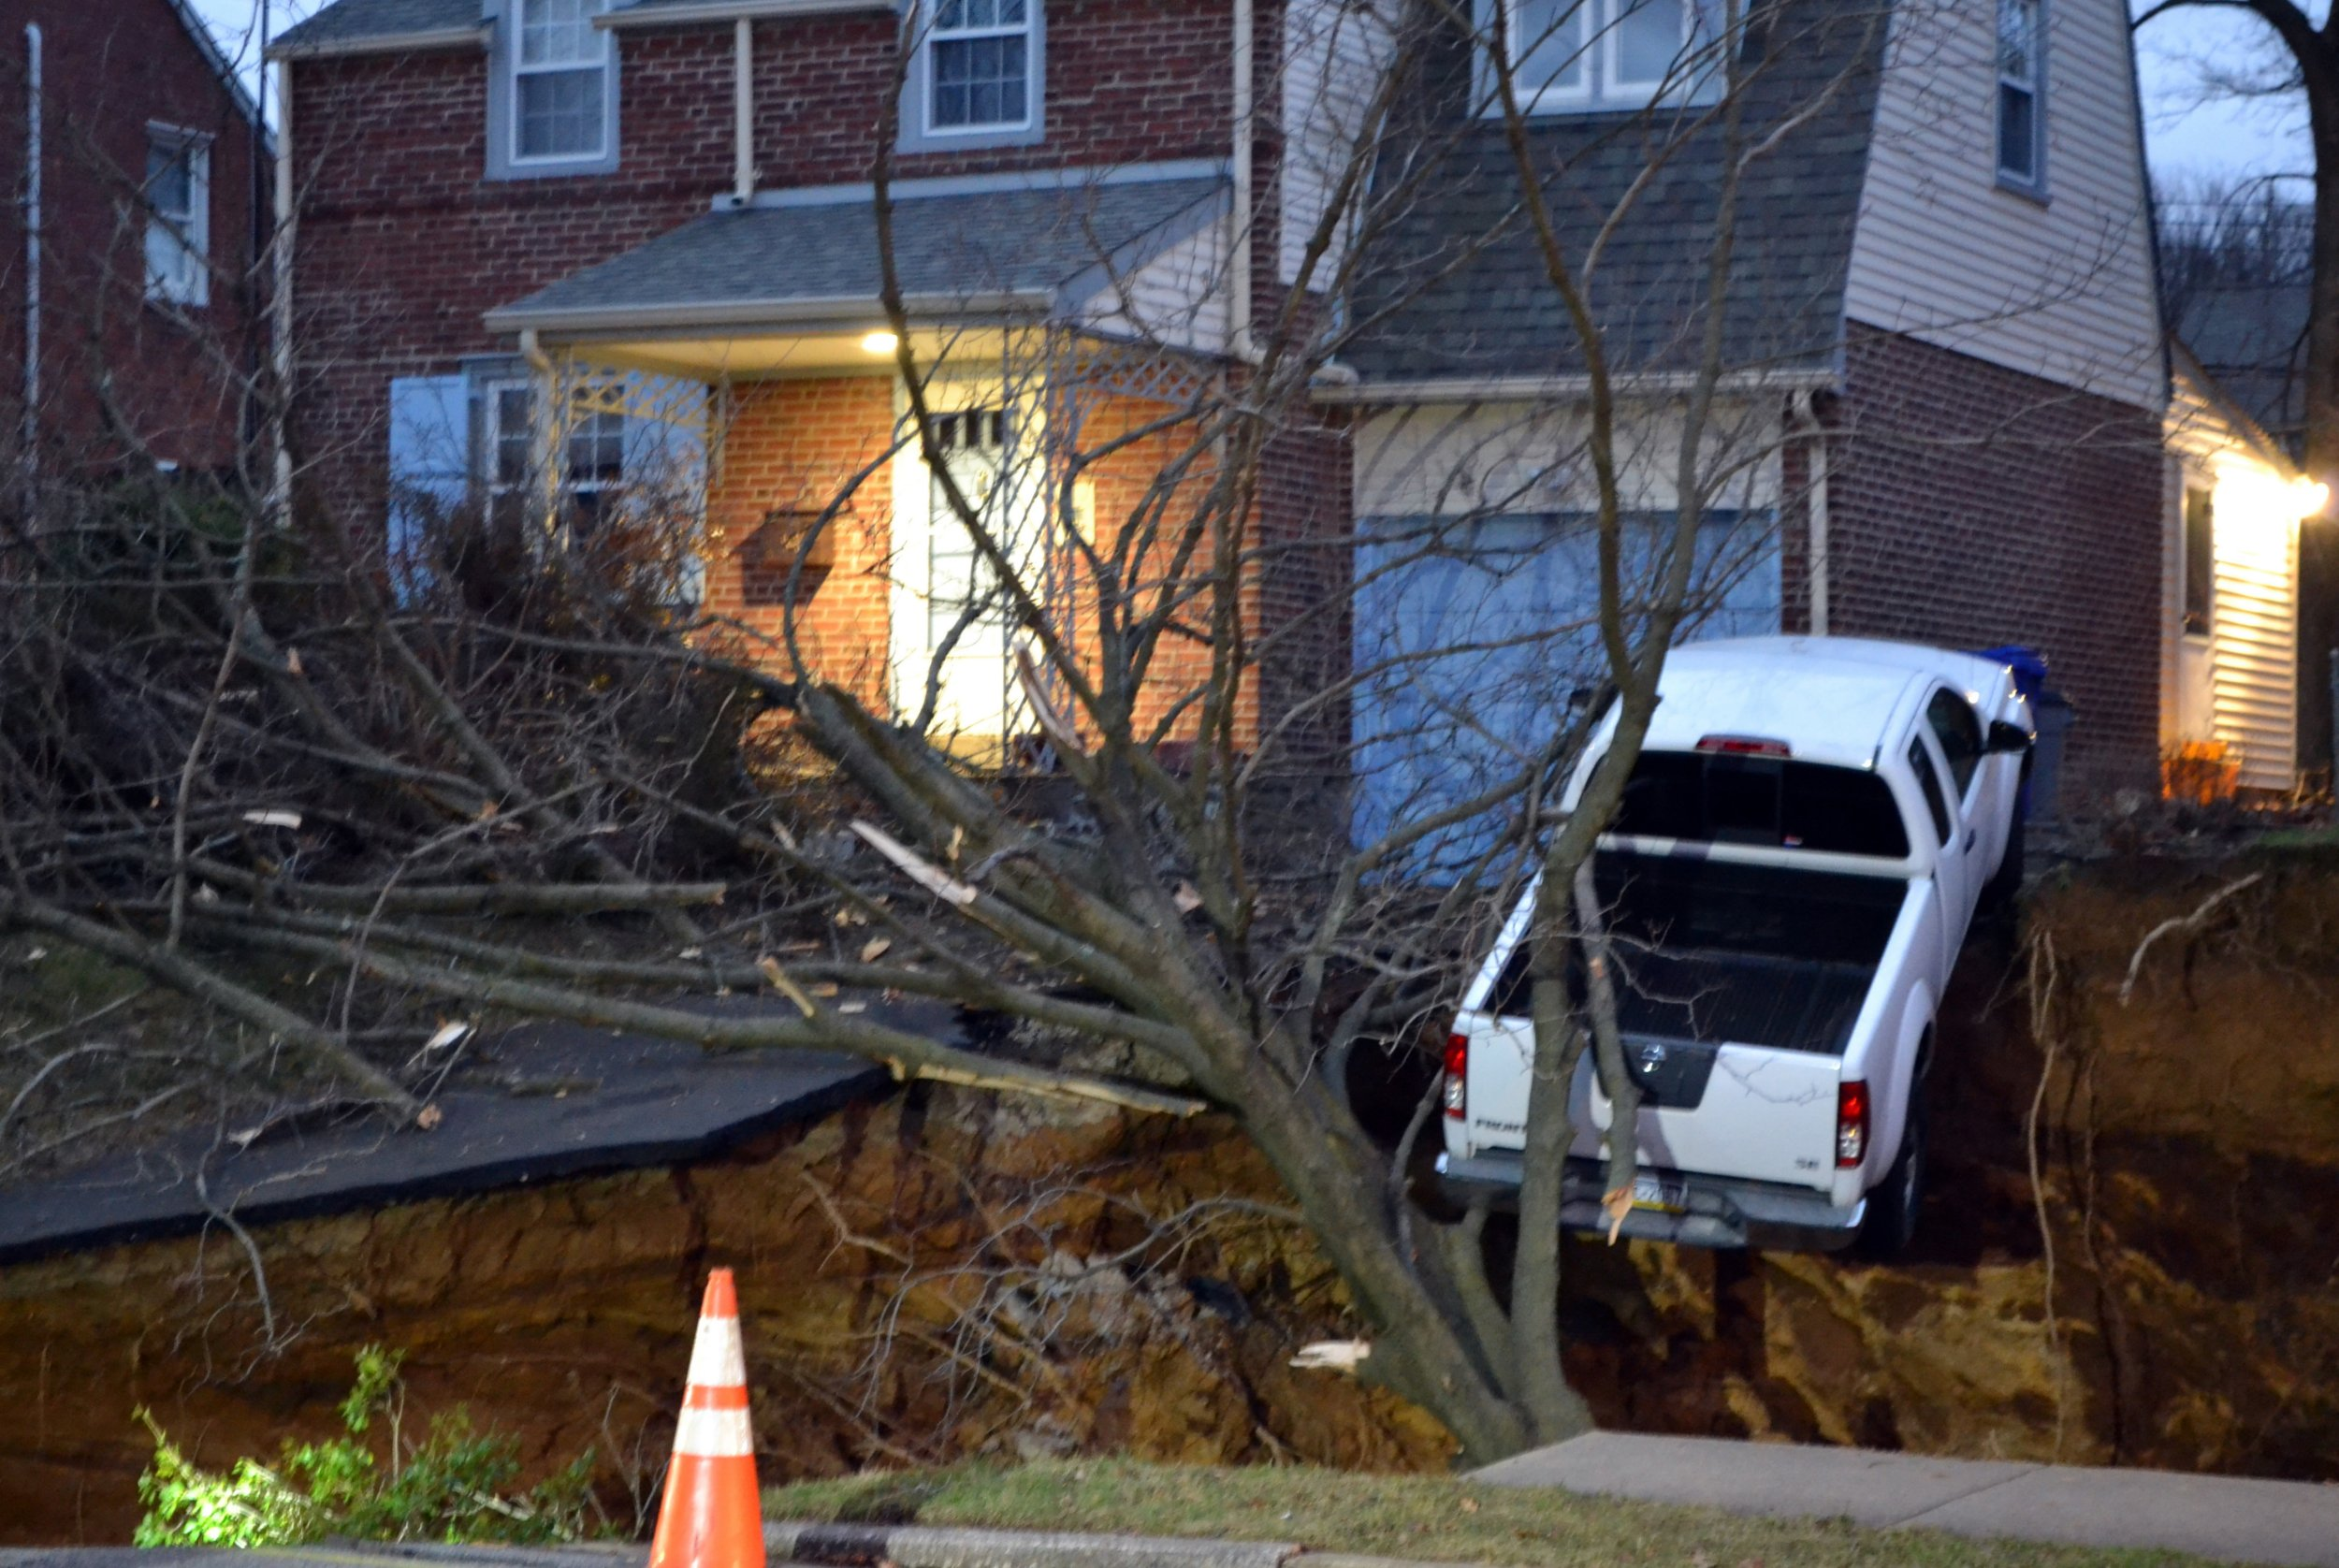 A pickup truck dangles over the edge of a sinkhole the swallowed parts of two residential yards Wednesday morning, Jan. 25, 2017, in the Philadelphia suburb of Glenside, Pa. Officials in Cheltenham Township say the hole, which appears to be about 20 feet deep, opened up about 4 a.m. Wednesday. Authorities say nobody's been hurt and there was no obvious, immediate cause for the sinkhole to develop. (Emily Casher Loomis via AP)